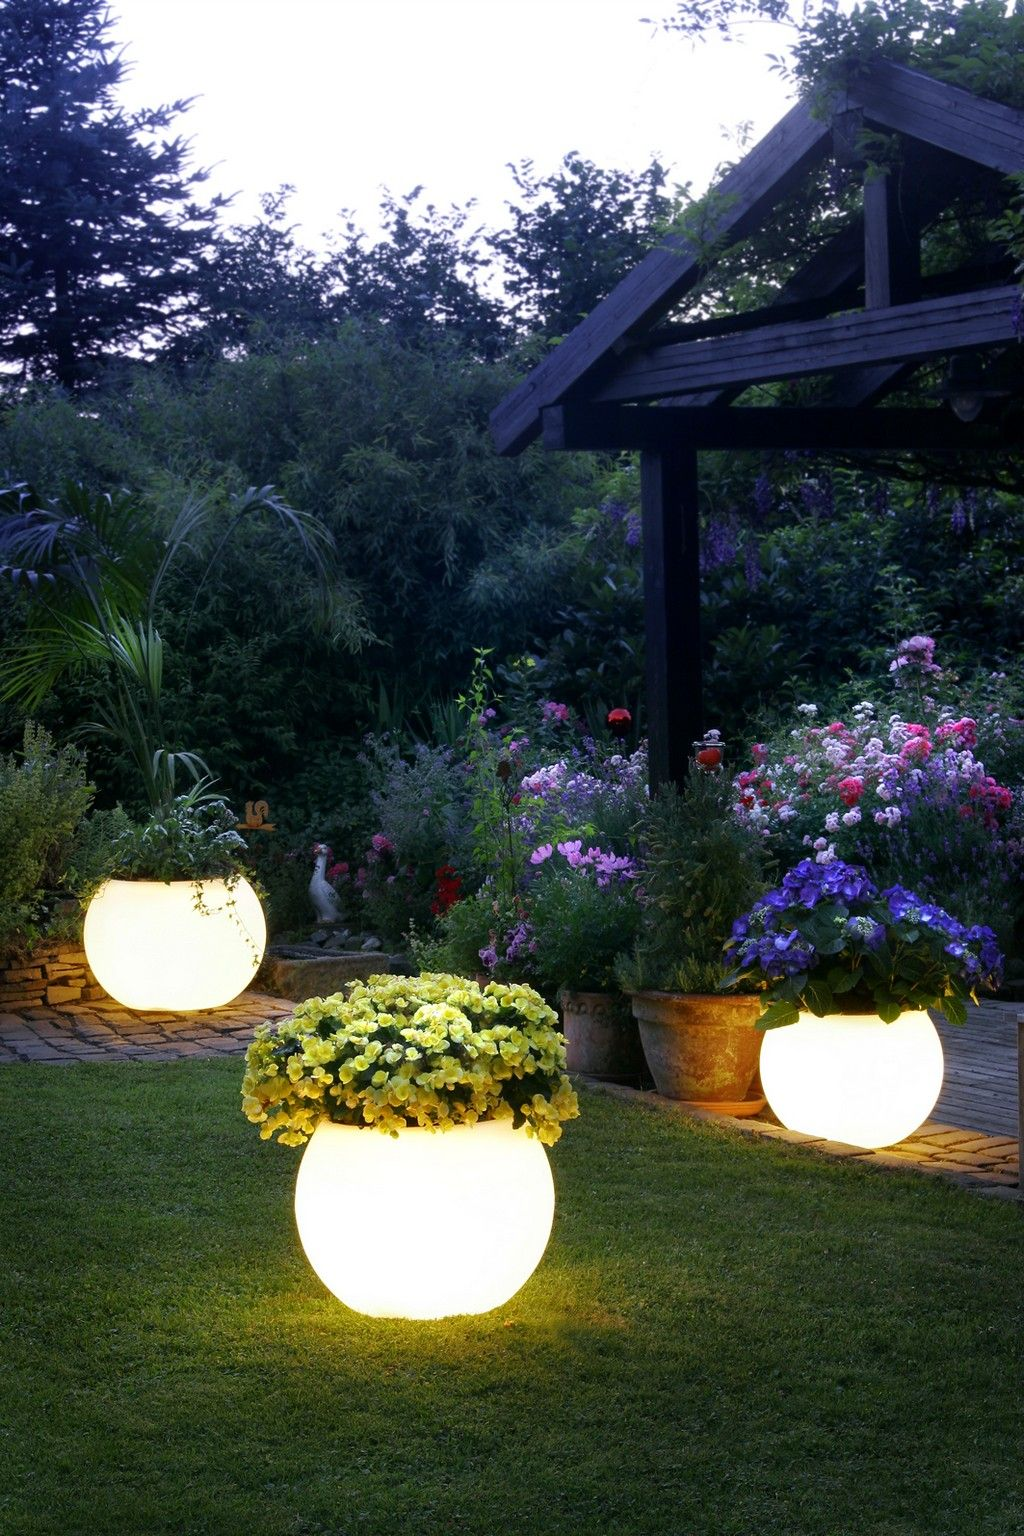 Glowing pots Perfect for my idea!